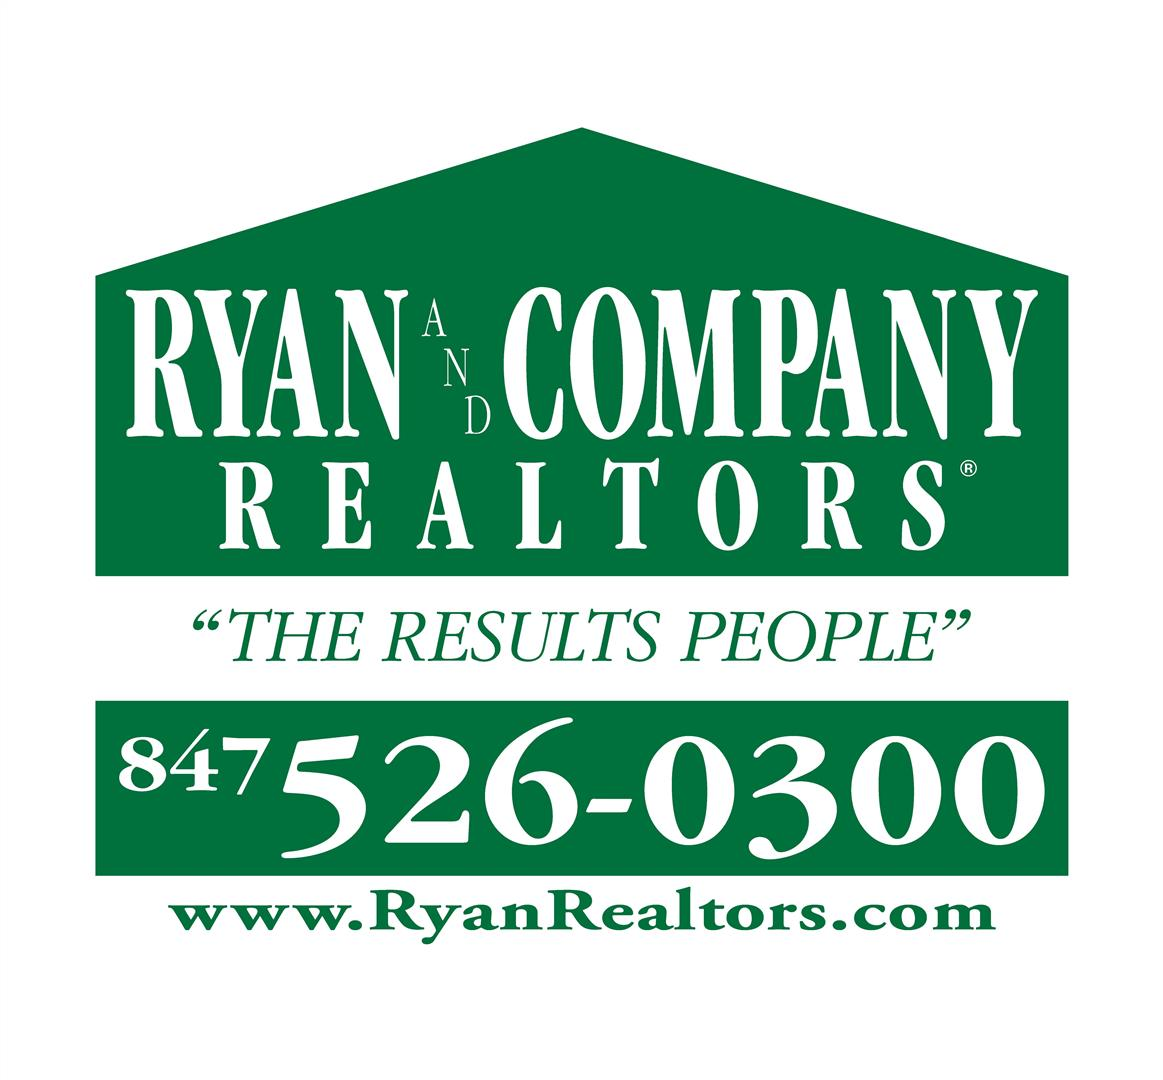 Ryan and Company Realtors, Inc.